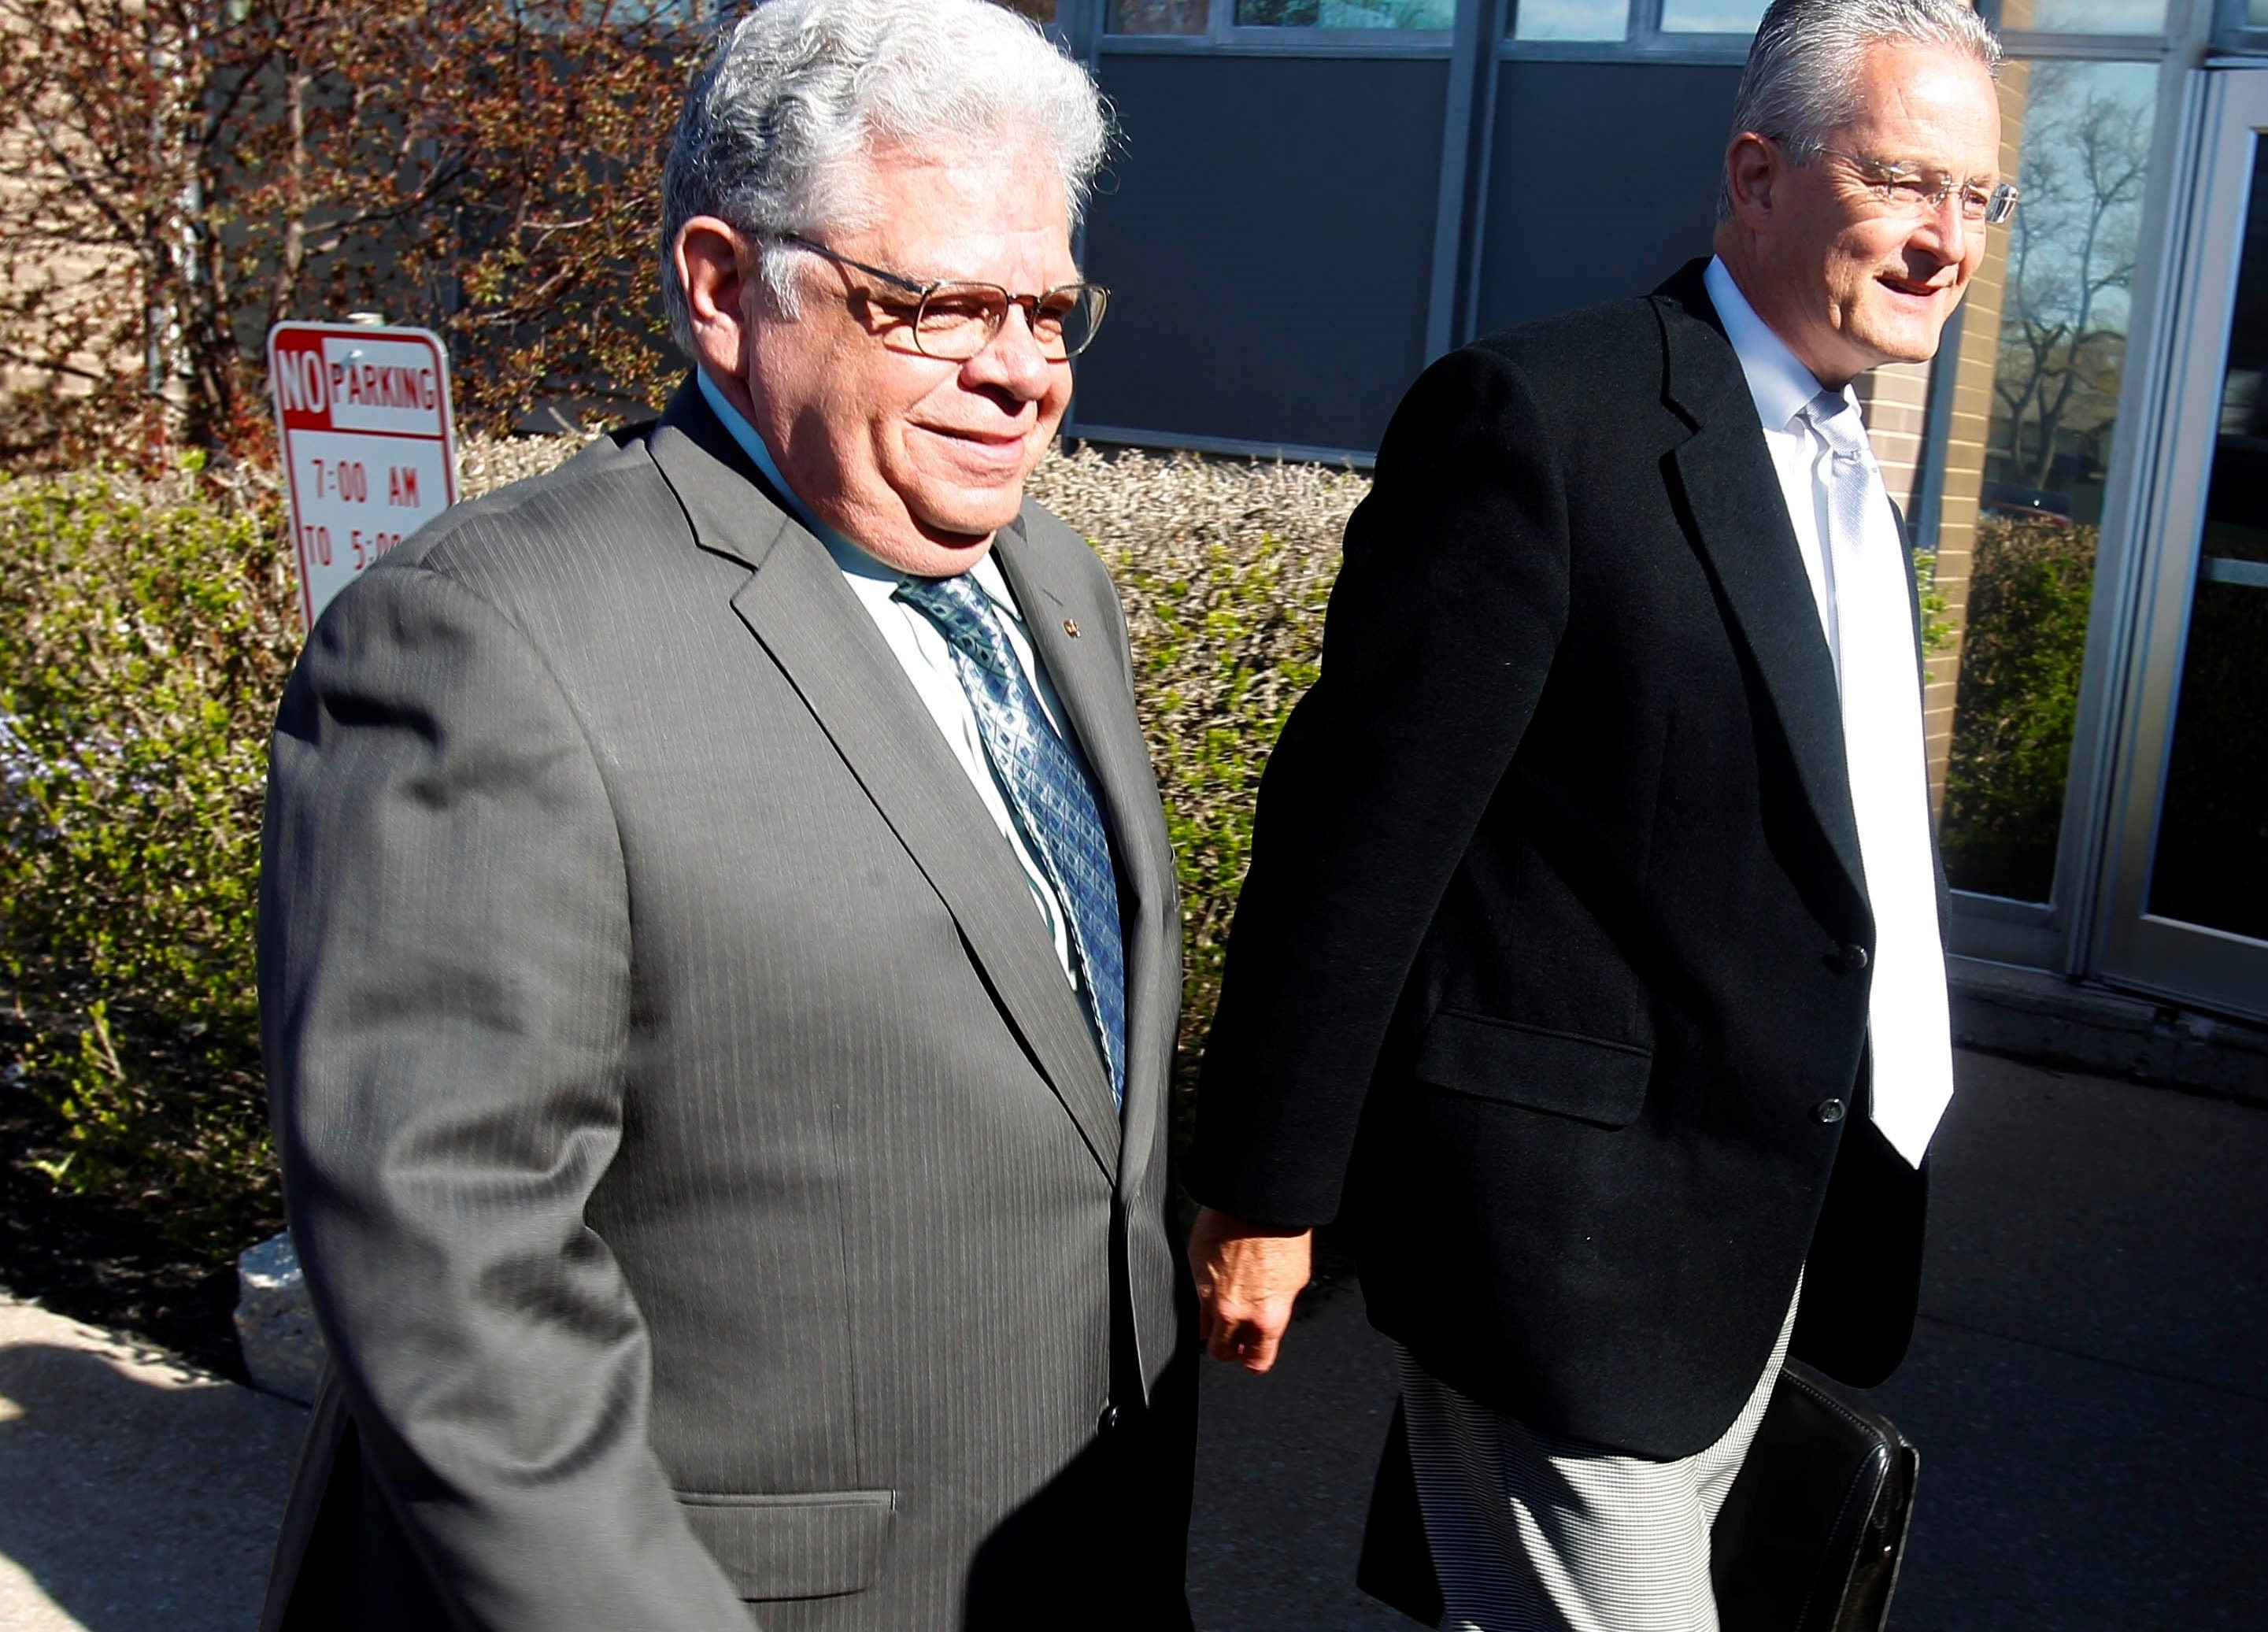 Steven C. Richards, ex-Niagara supervisor, arrives at County Court in Lockport.